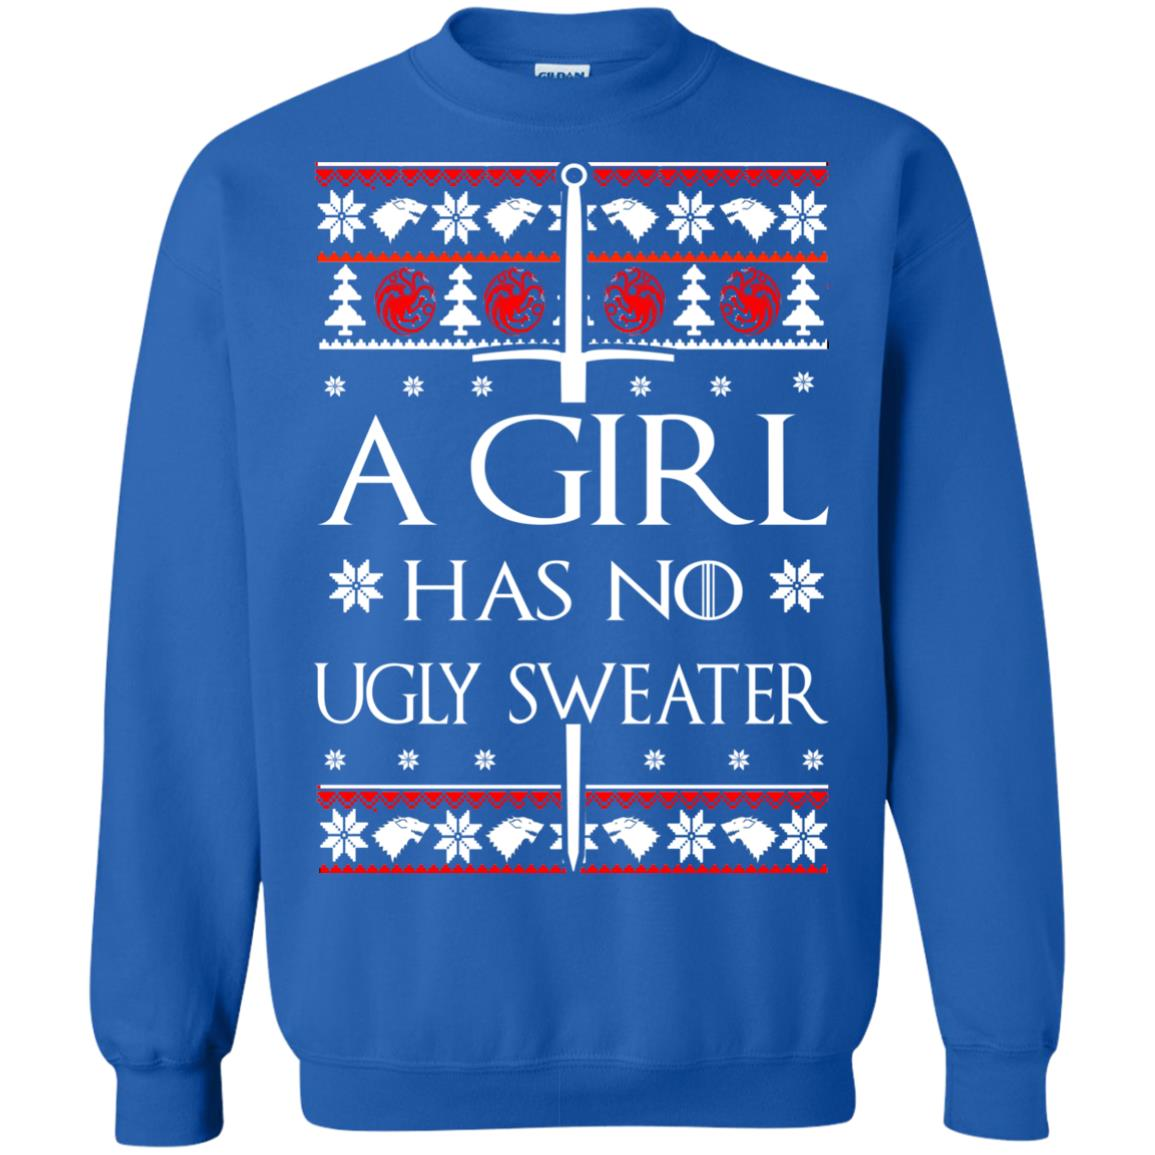 image 1509 - A Girl Has no Ugly Sweater, Shirt, Christmas Sweatshirt Game Of Thrones